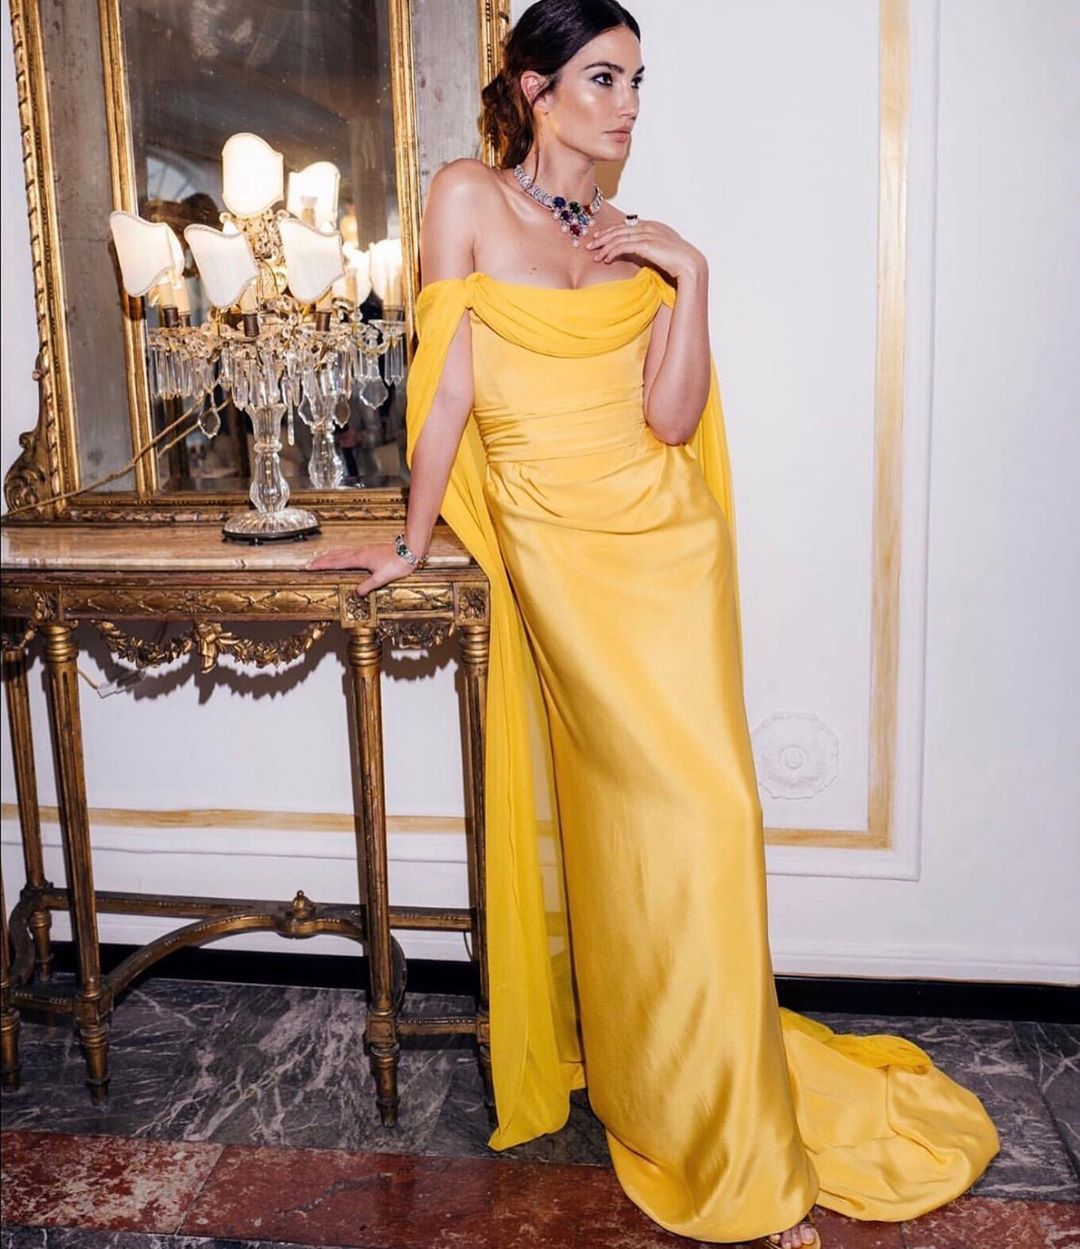 Lilyaldridge Wears A Viviennewestwood Couture Corseted Dress In Draped Sunflower Yellow Silk Crepe With Silk Chif Silk Yellow Dress Dresses Colourful Outfits [ 1249 x 1080 Pixel ]